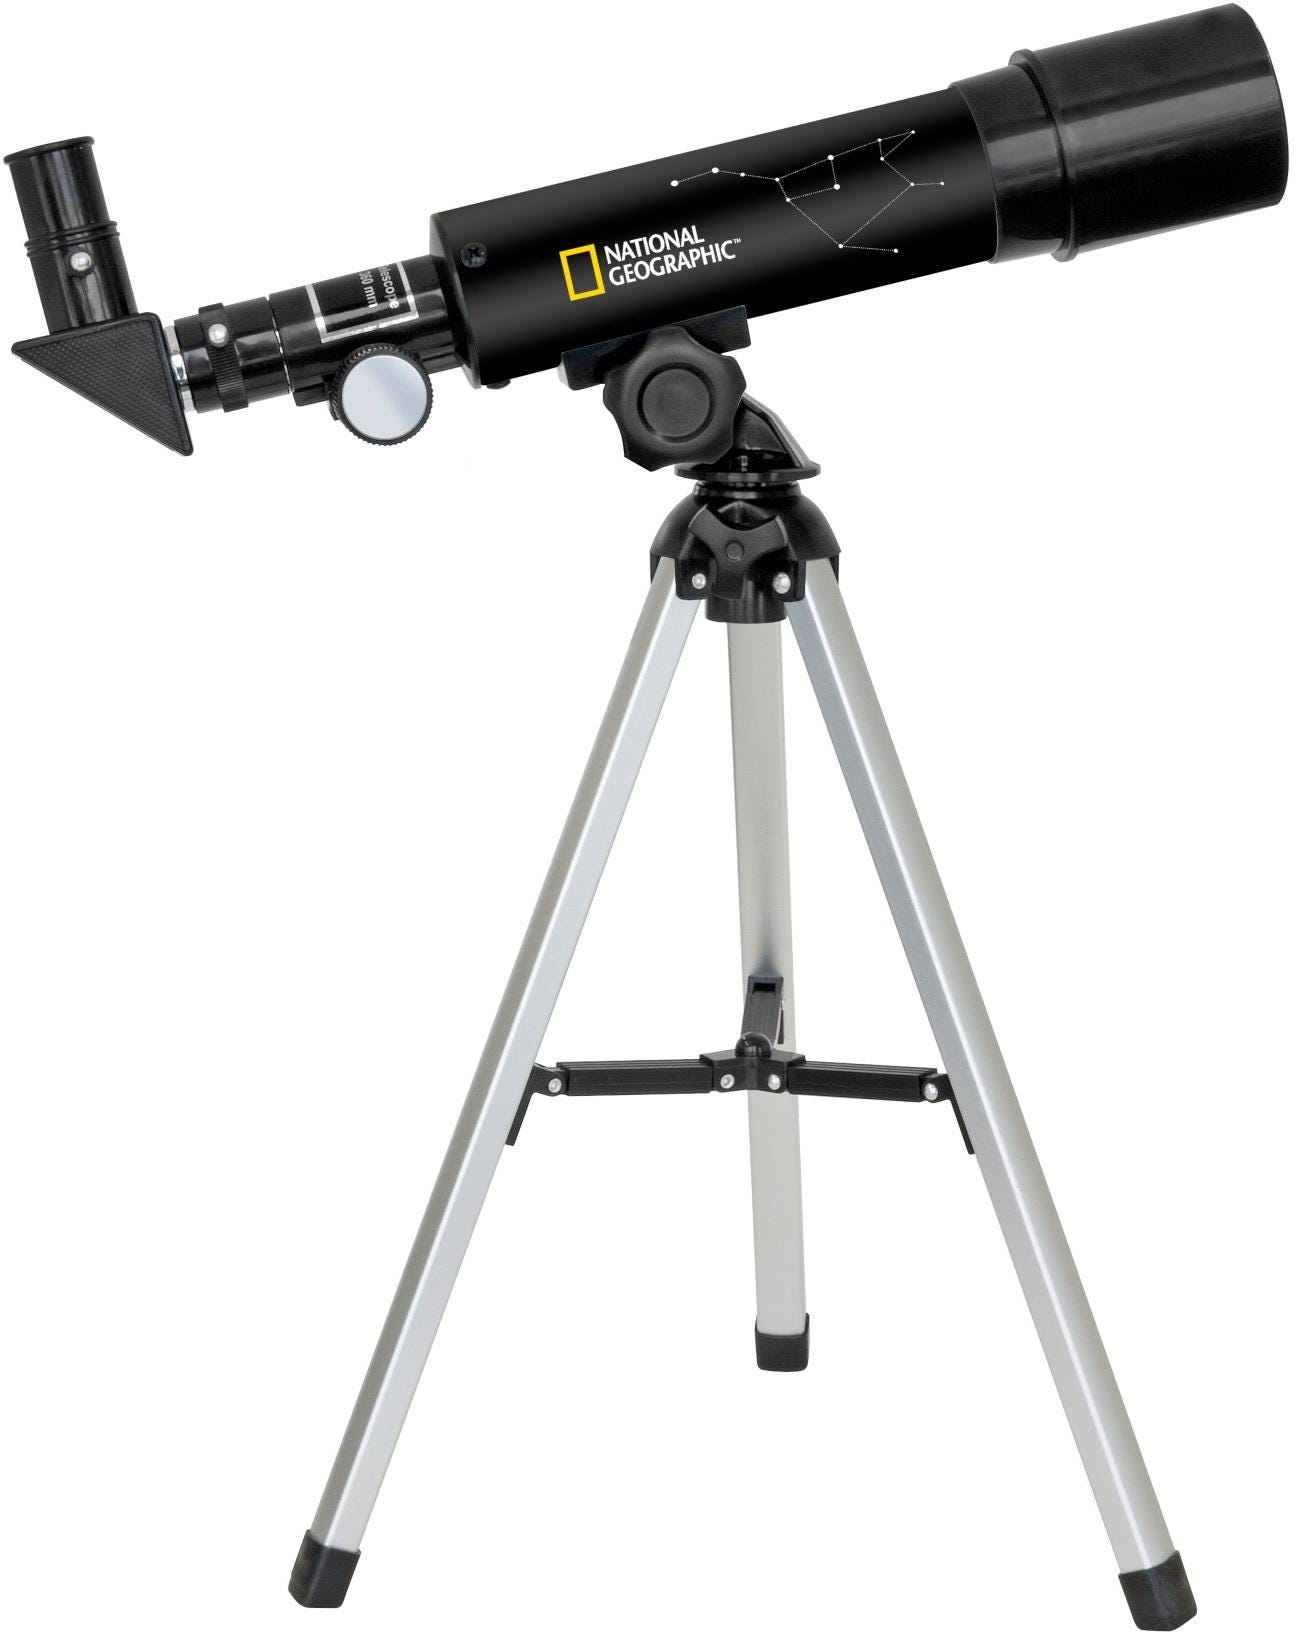 National Geographic 50/360 Refractor Telescope - Black